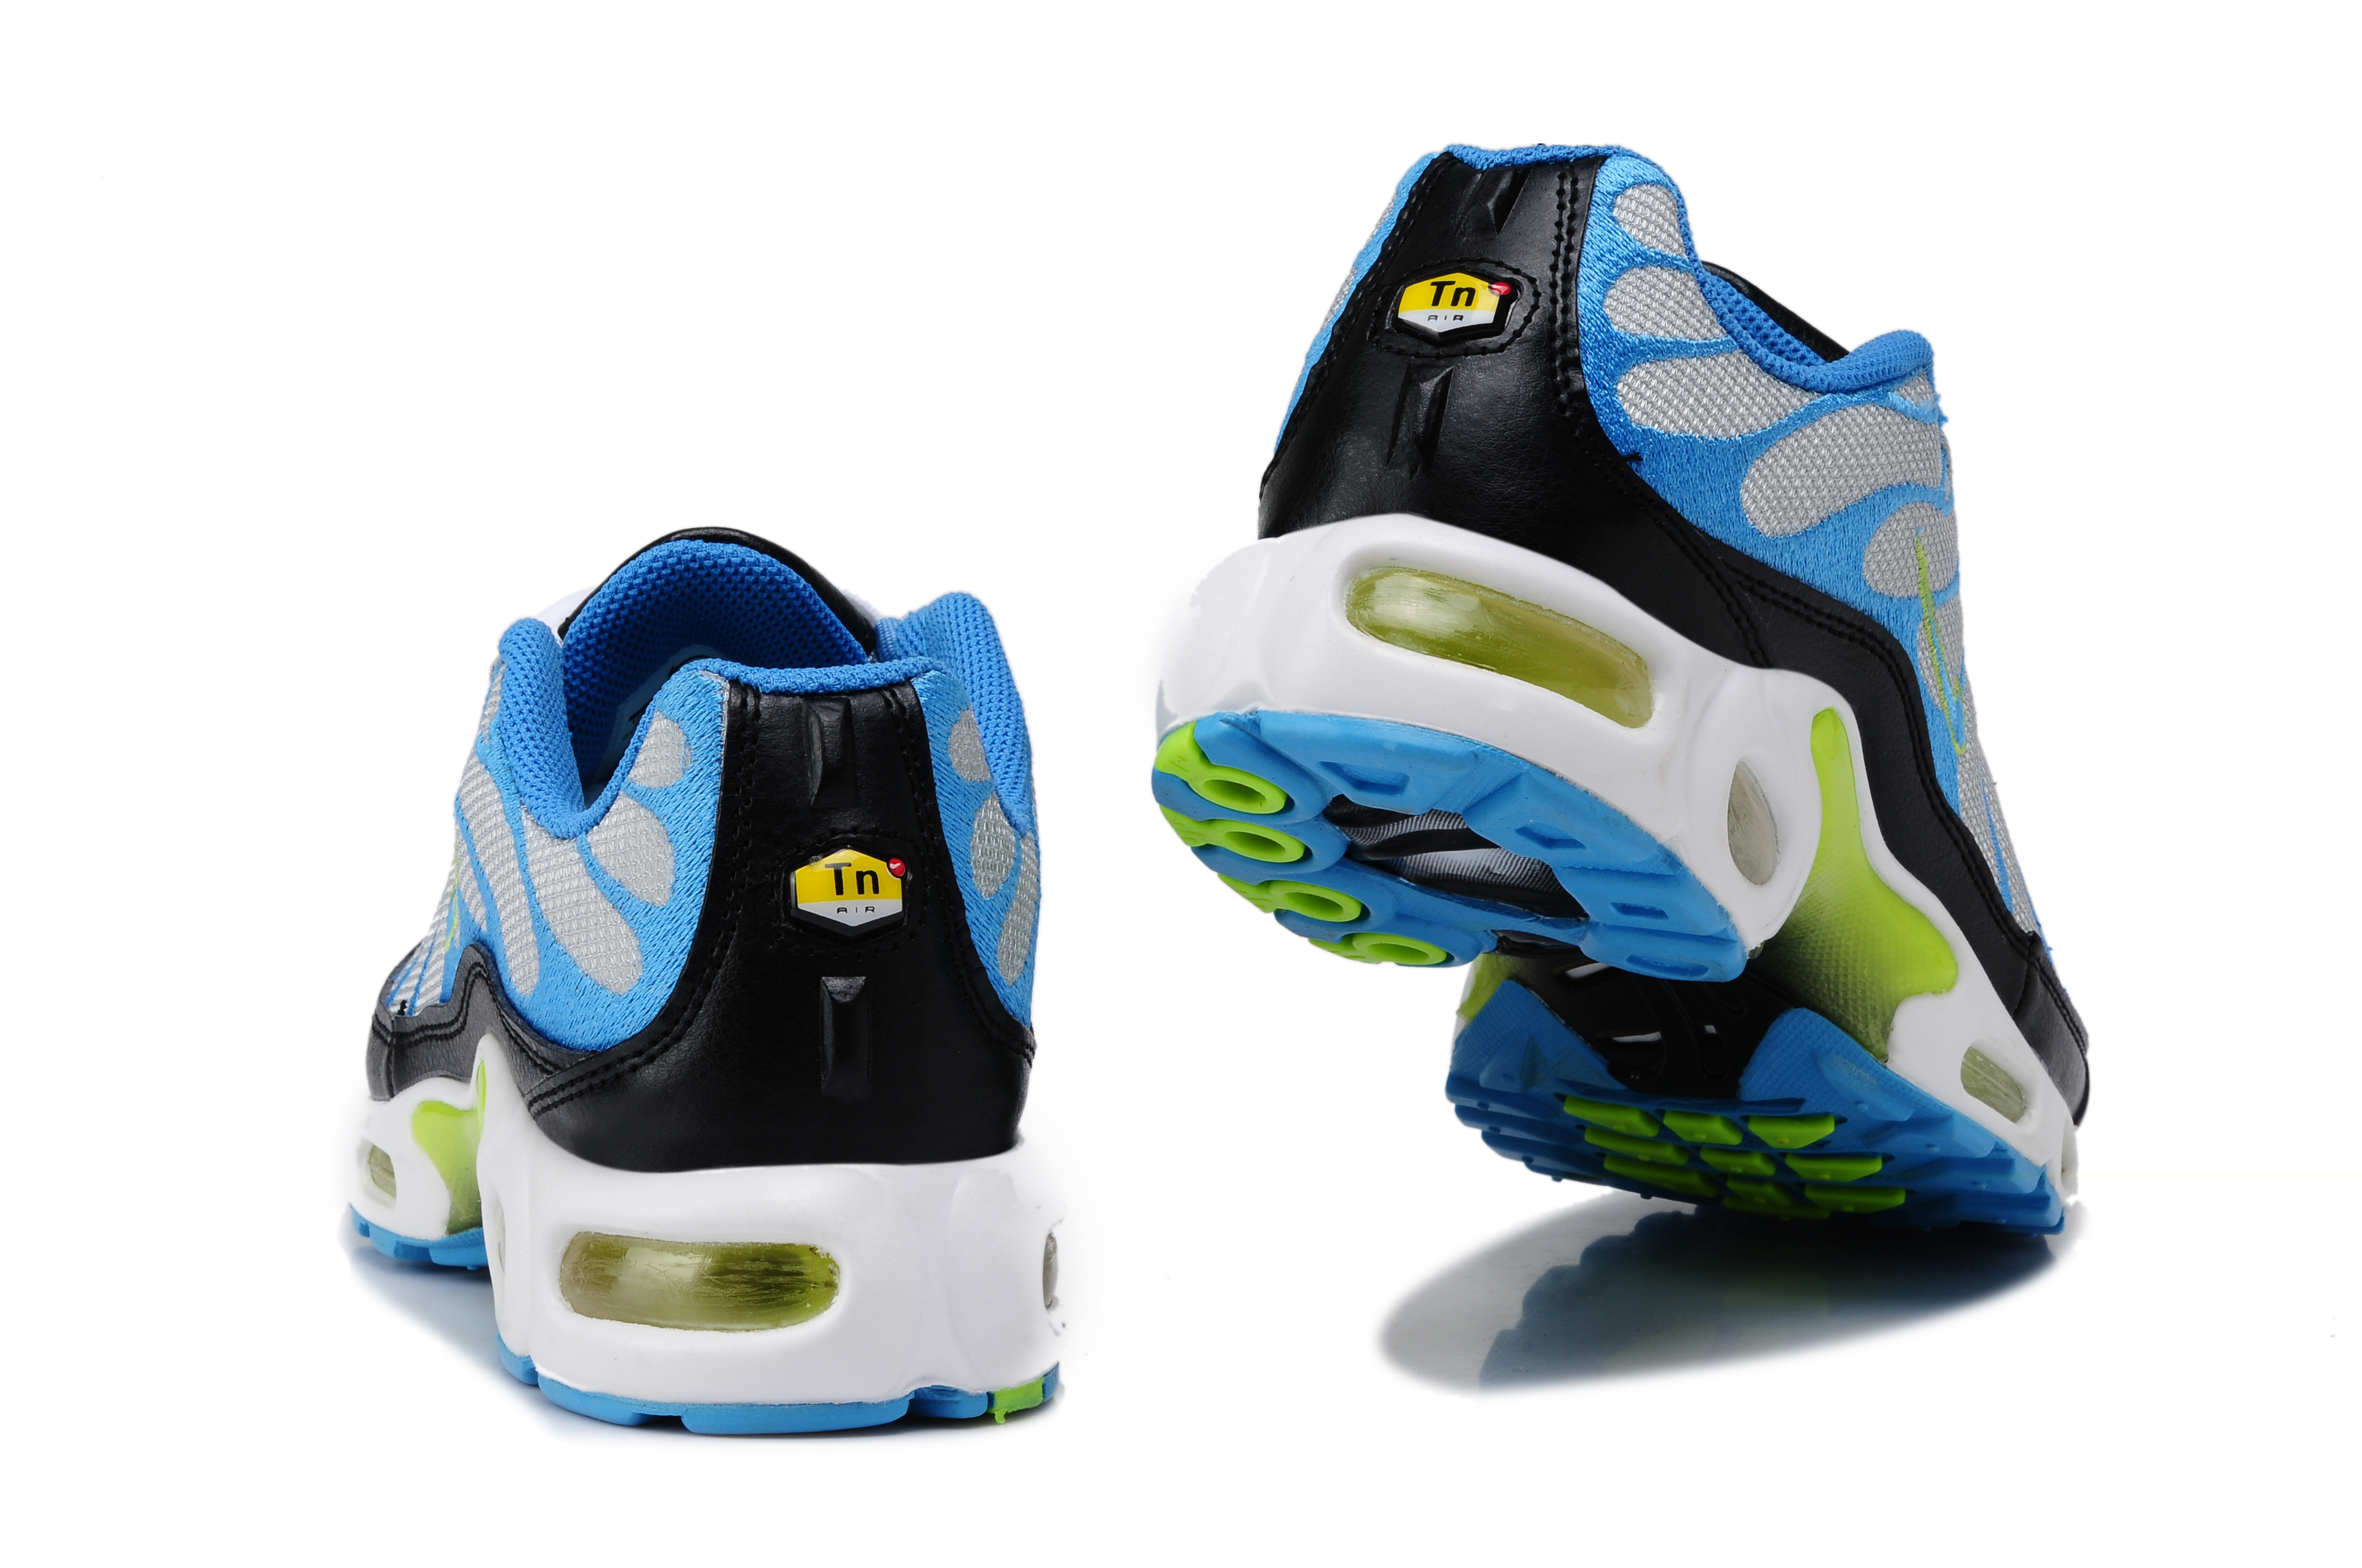 sports shoes 4b424 8c261 Nike-TN-Requin-2014-Femme-chaussure-nike-air-max-command-si-pour-homme,nike- air-max